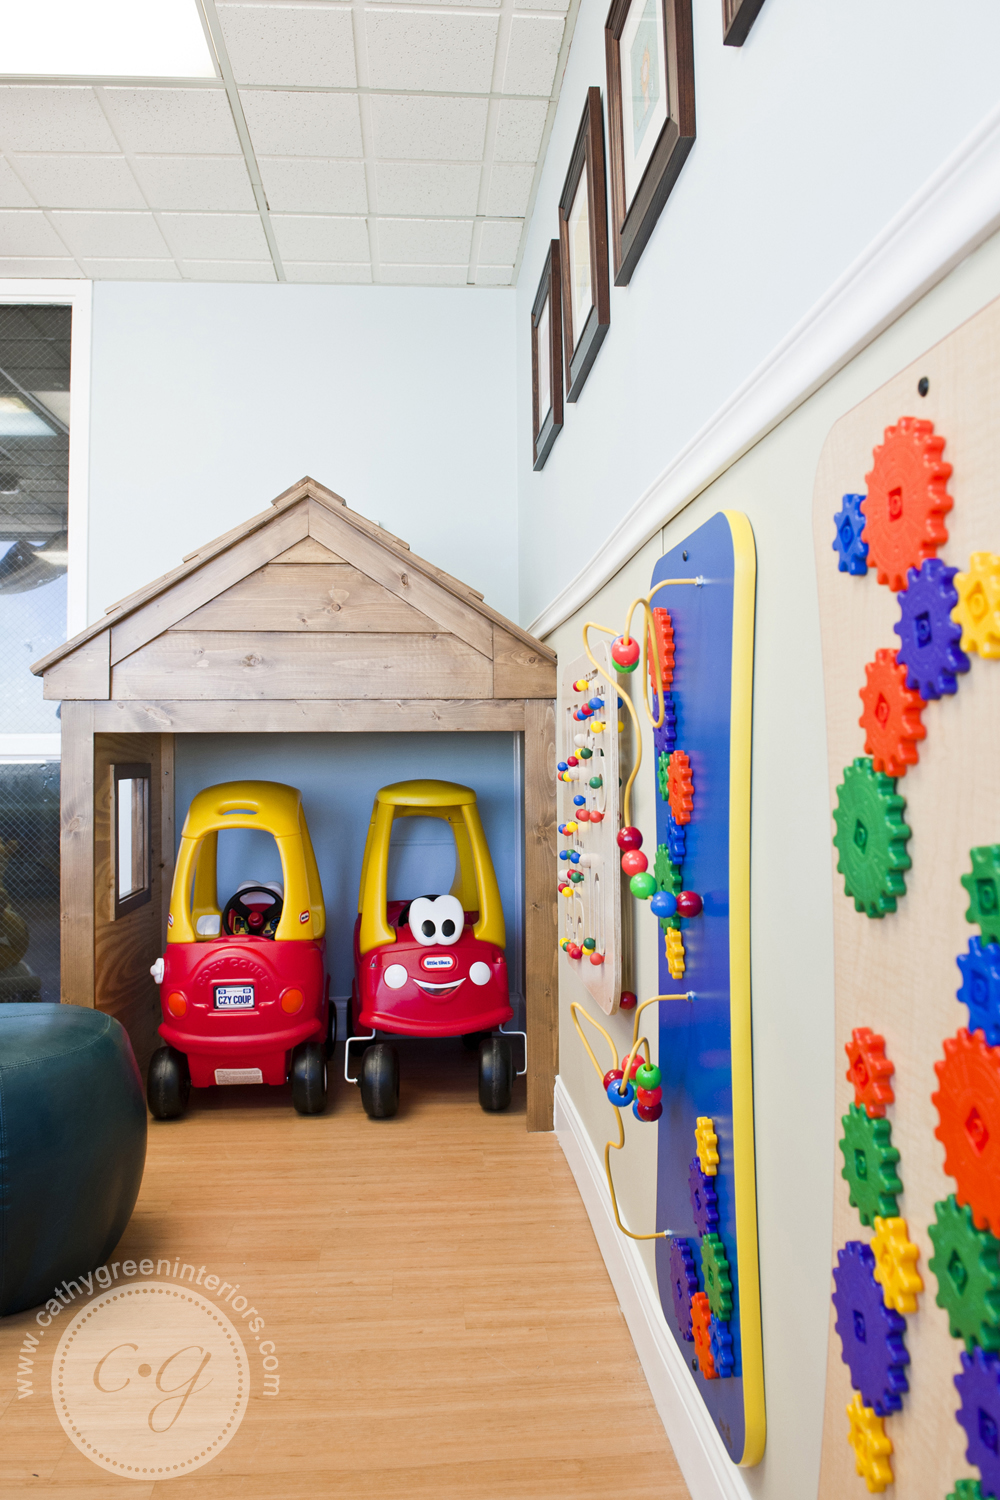 Chippenham Hospital Playroom Cozy Coupe garage - Richmond, VA